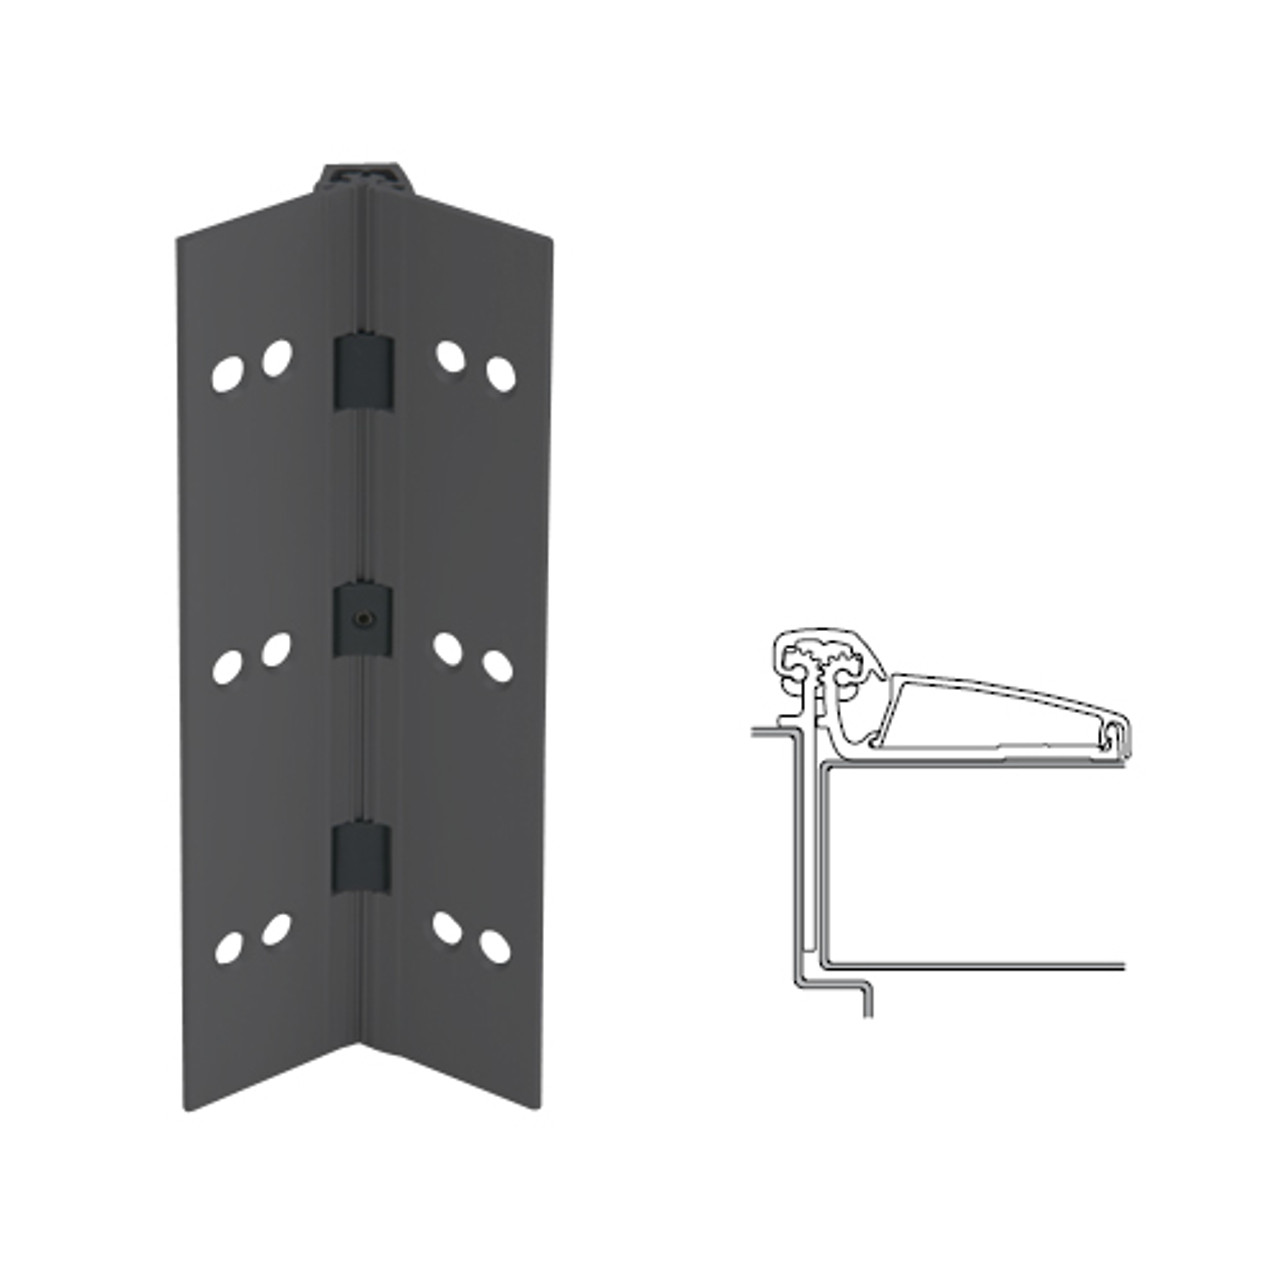 046XY-315AN-83-WD IVES Adjustable Half Surface Continuous Geared Hinges with Wood Screws in Anodized Black